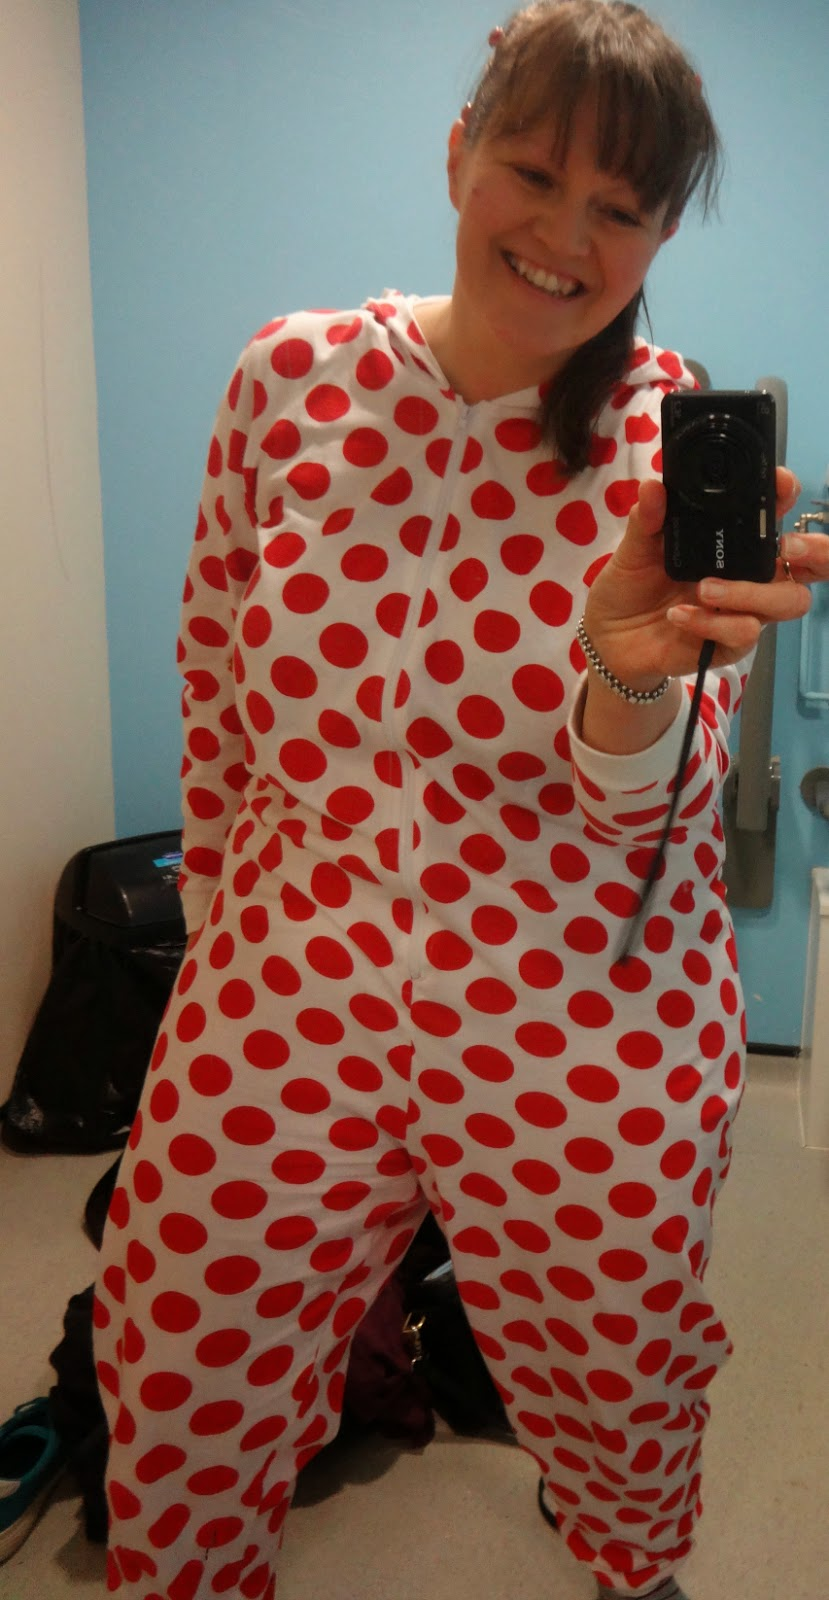 TK Maxx Comic Relief Red Nose Day 2015 onesie